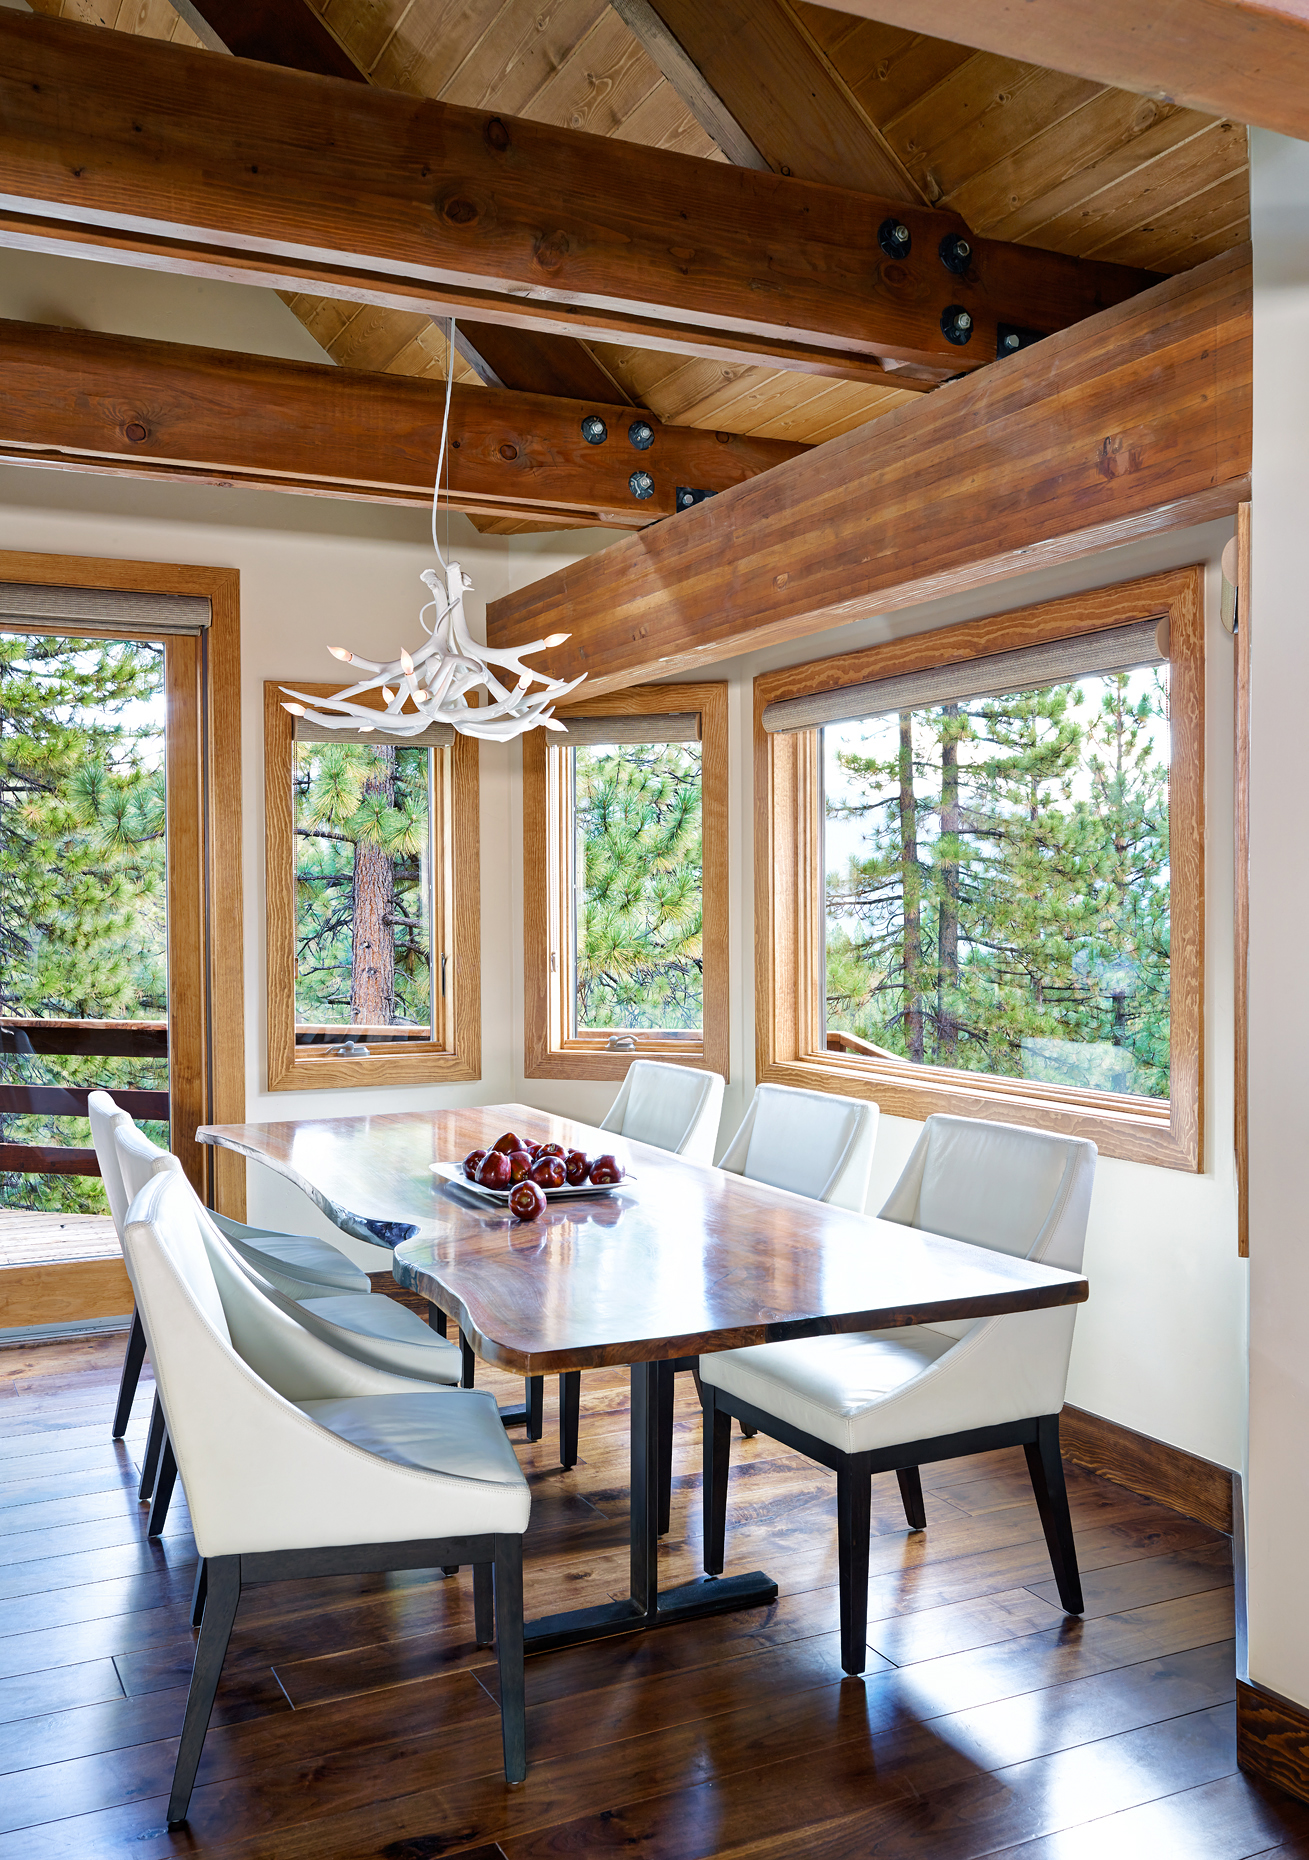 rustic-dining-area-w-slab-dining-table-overstretching-rafters-and-amazing-views